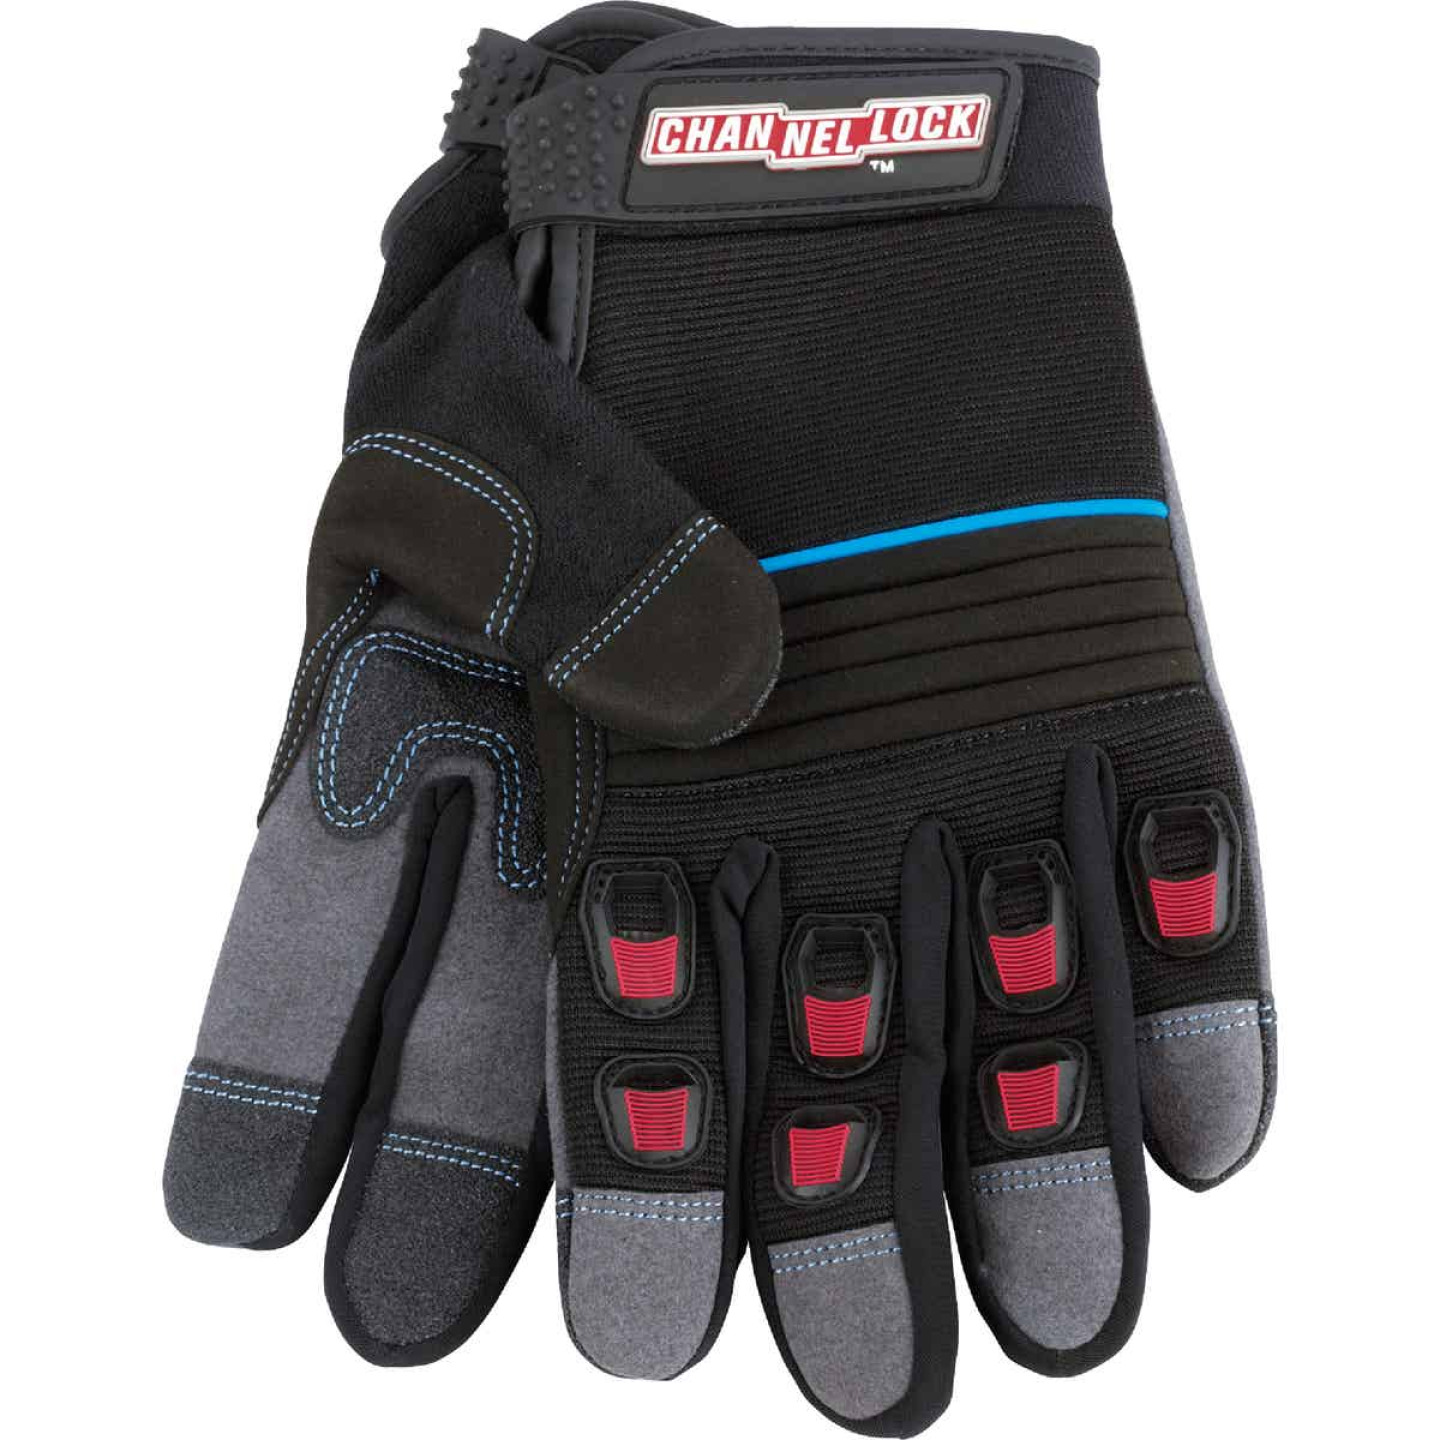 Channellock Men's Medium Synthetic Leather Heavy-Duty High Performance Glove Image 3